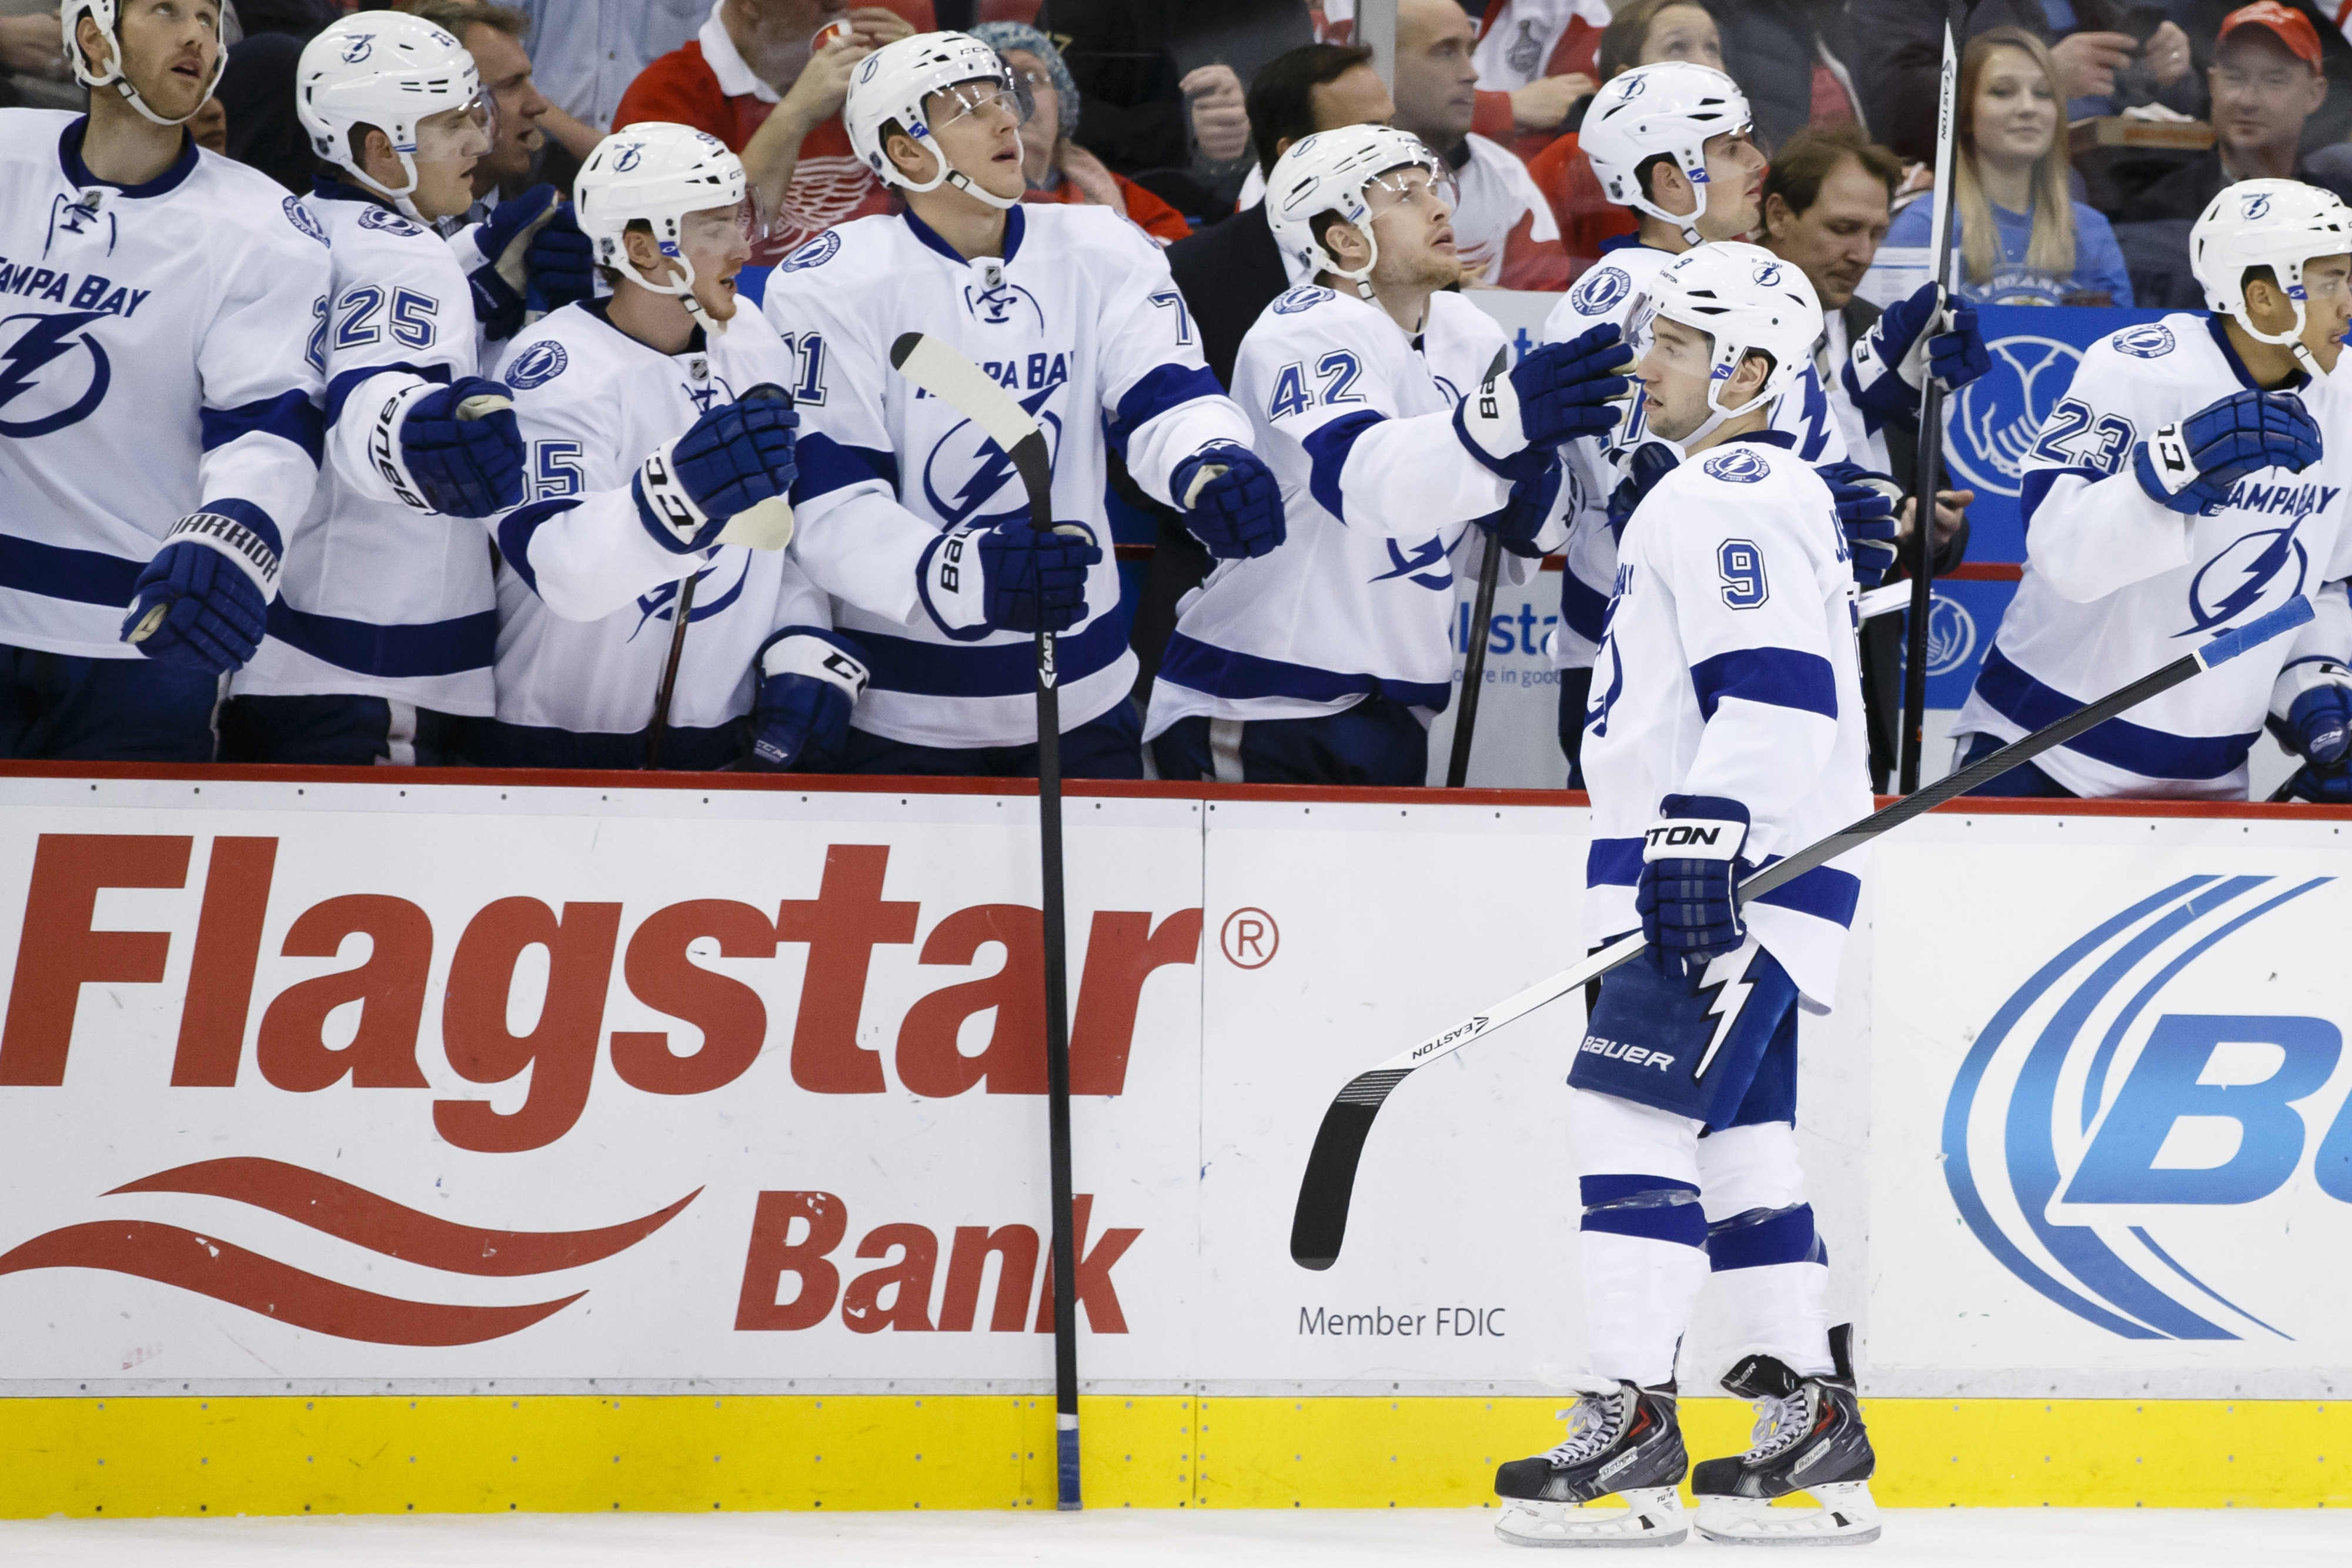 Tyler Johnson has kicked some ice this year. Surprised?